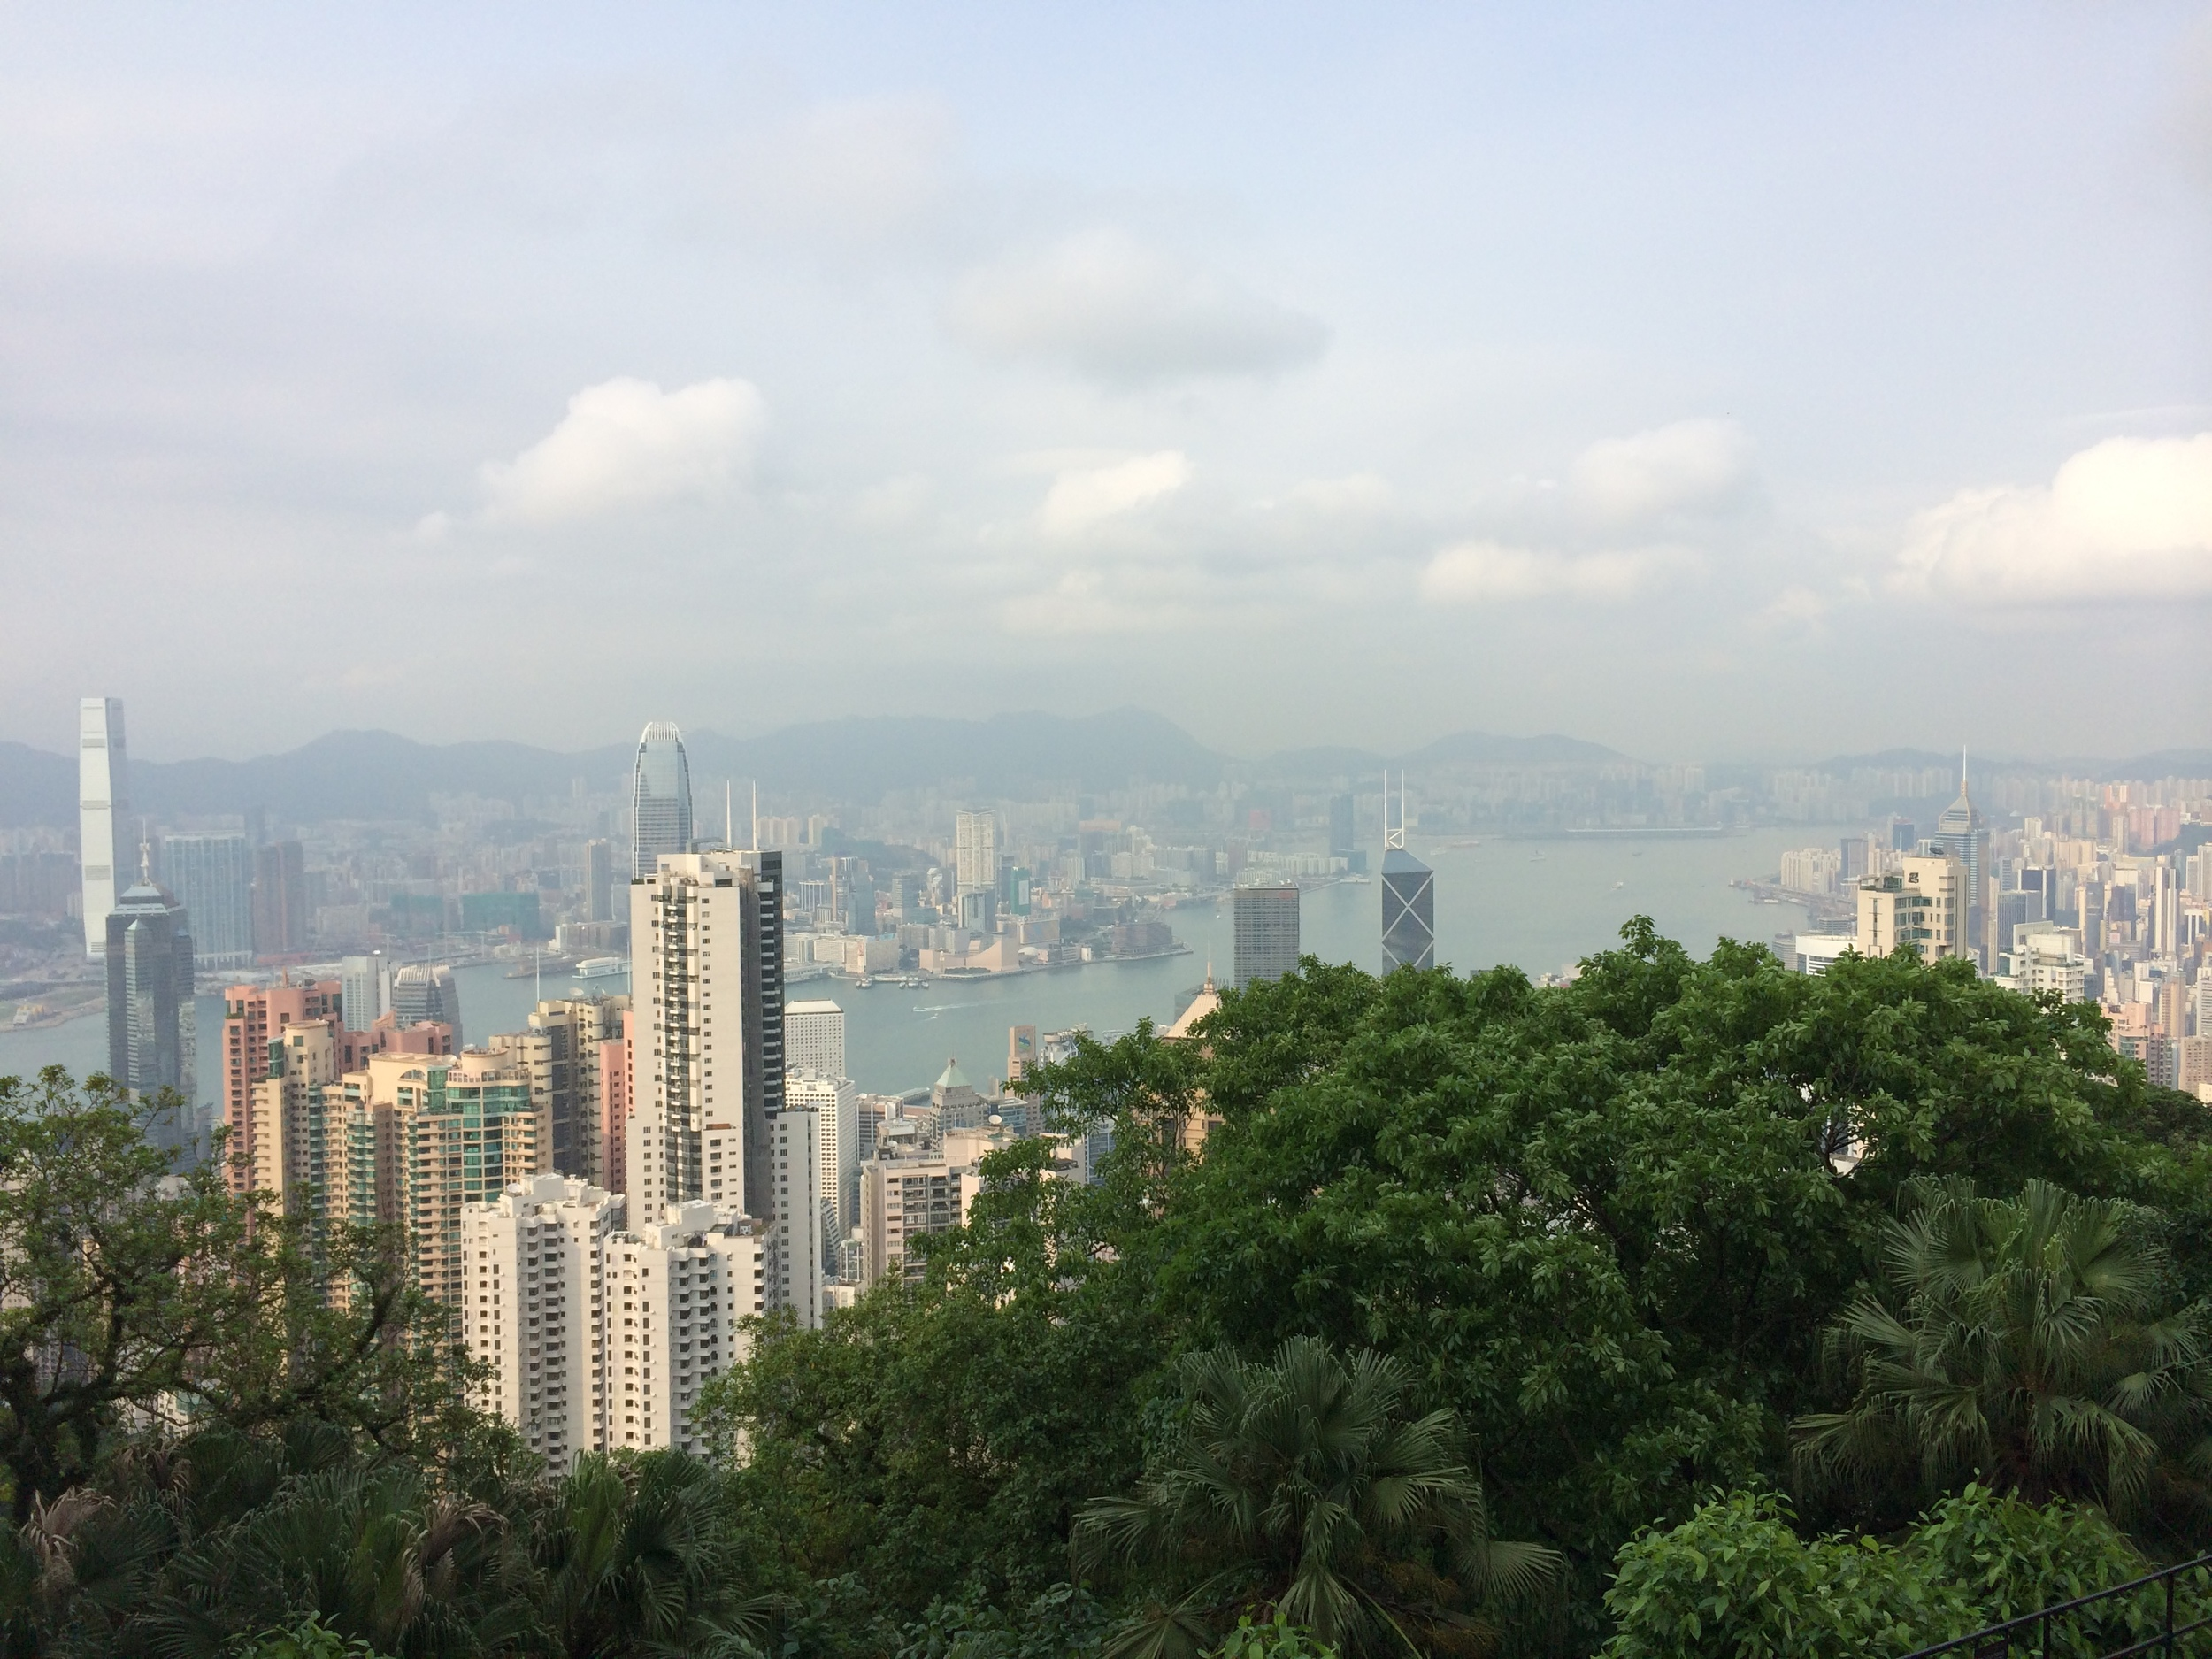 Panoramic view of Kowloon